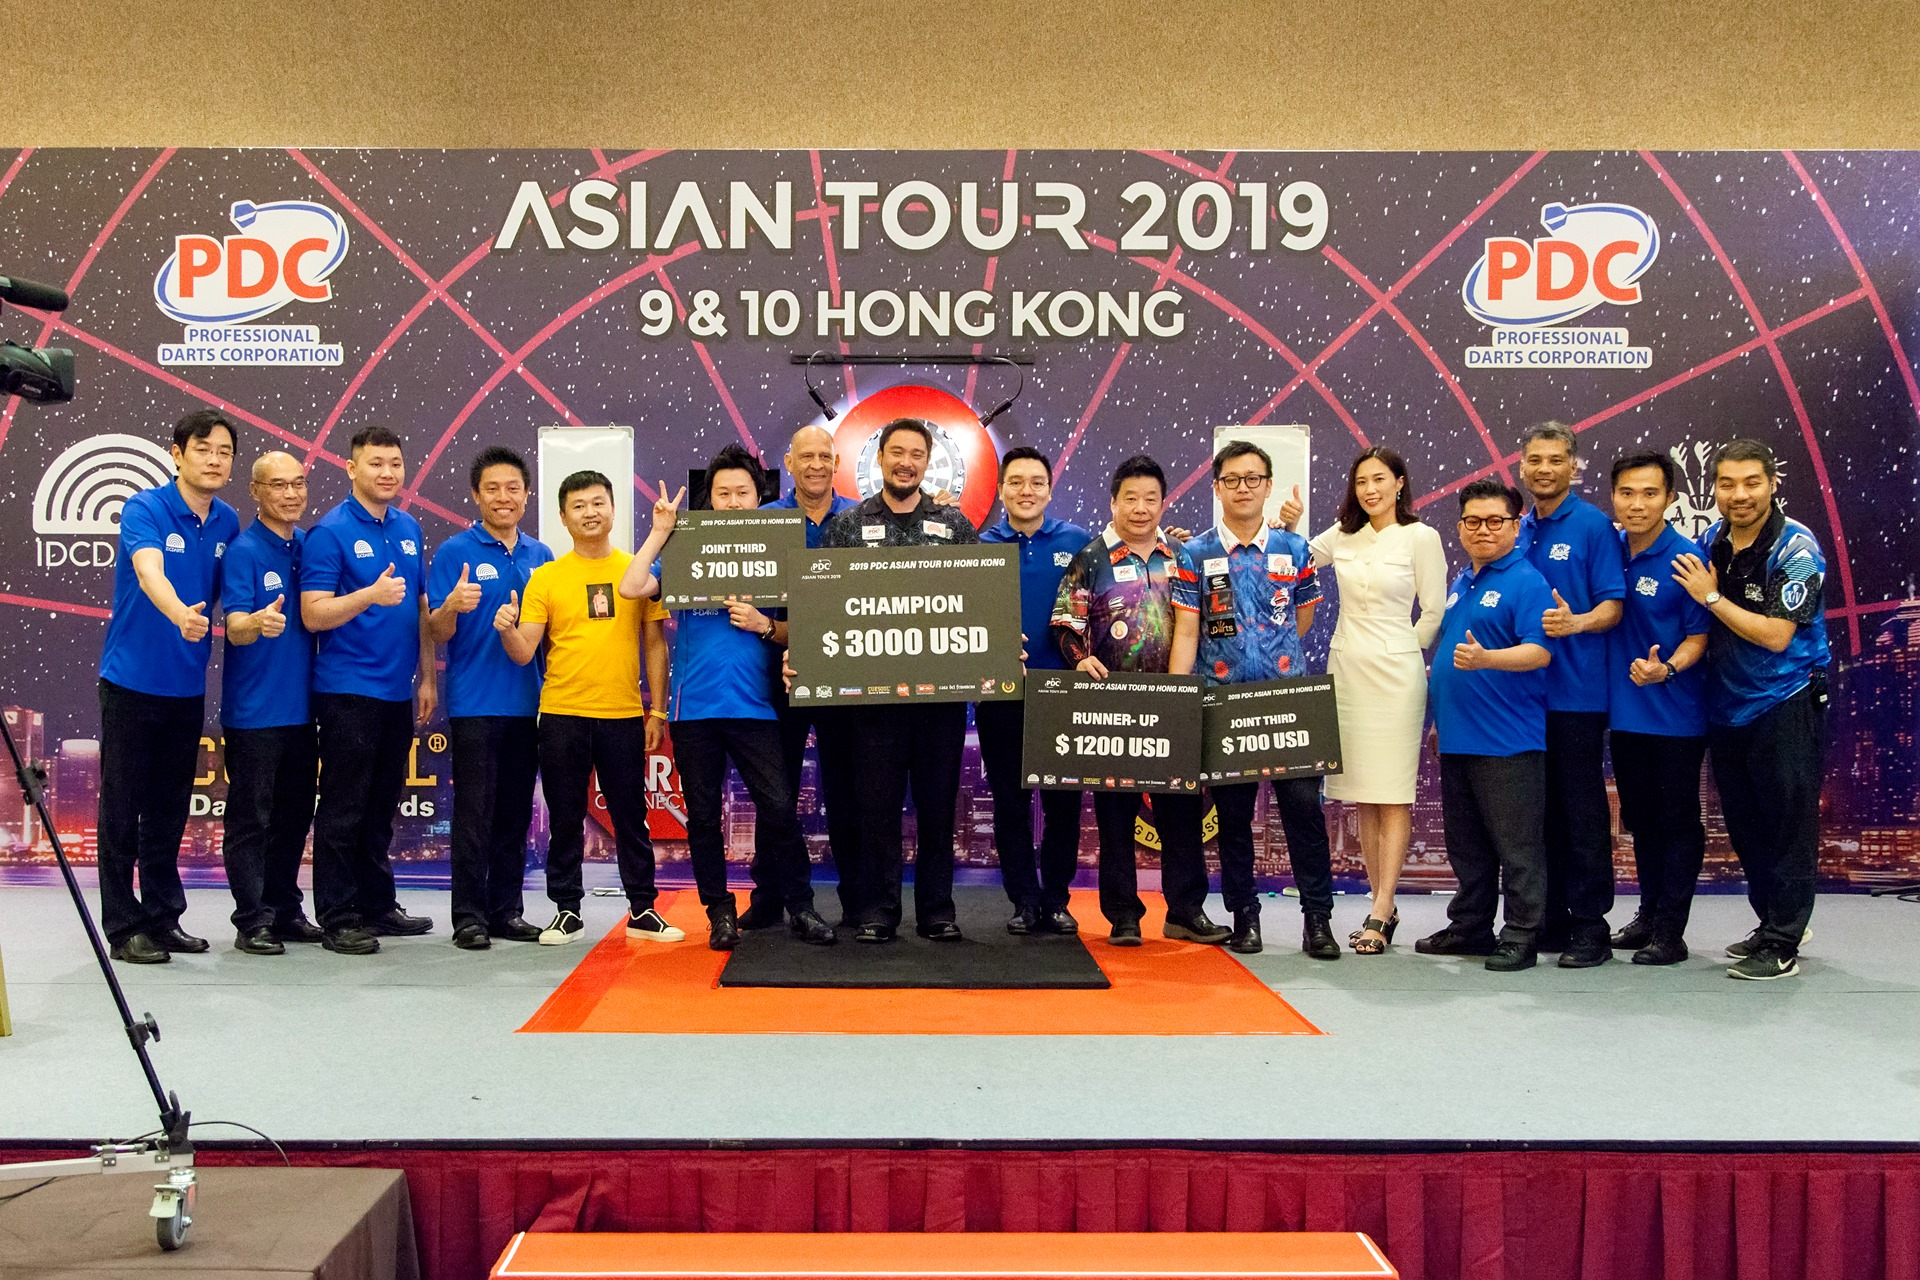 【PDC Asian Tour 2019】STAGE 10